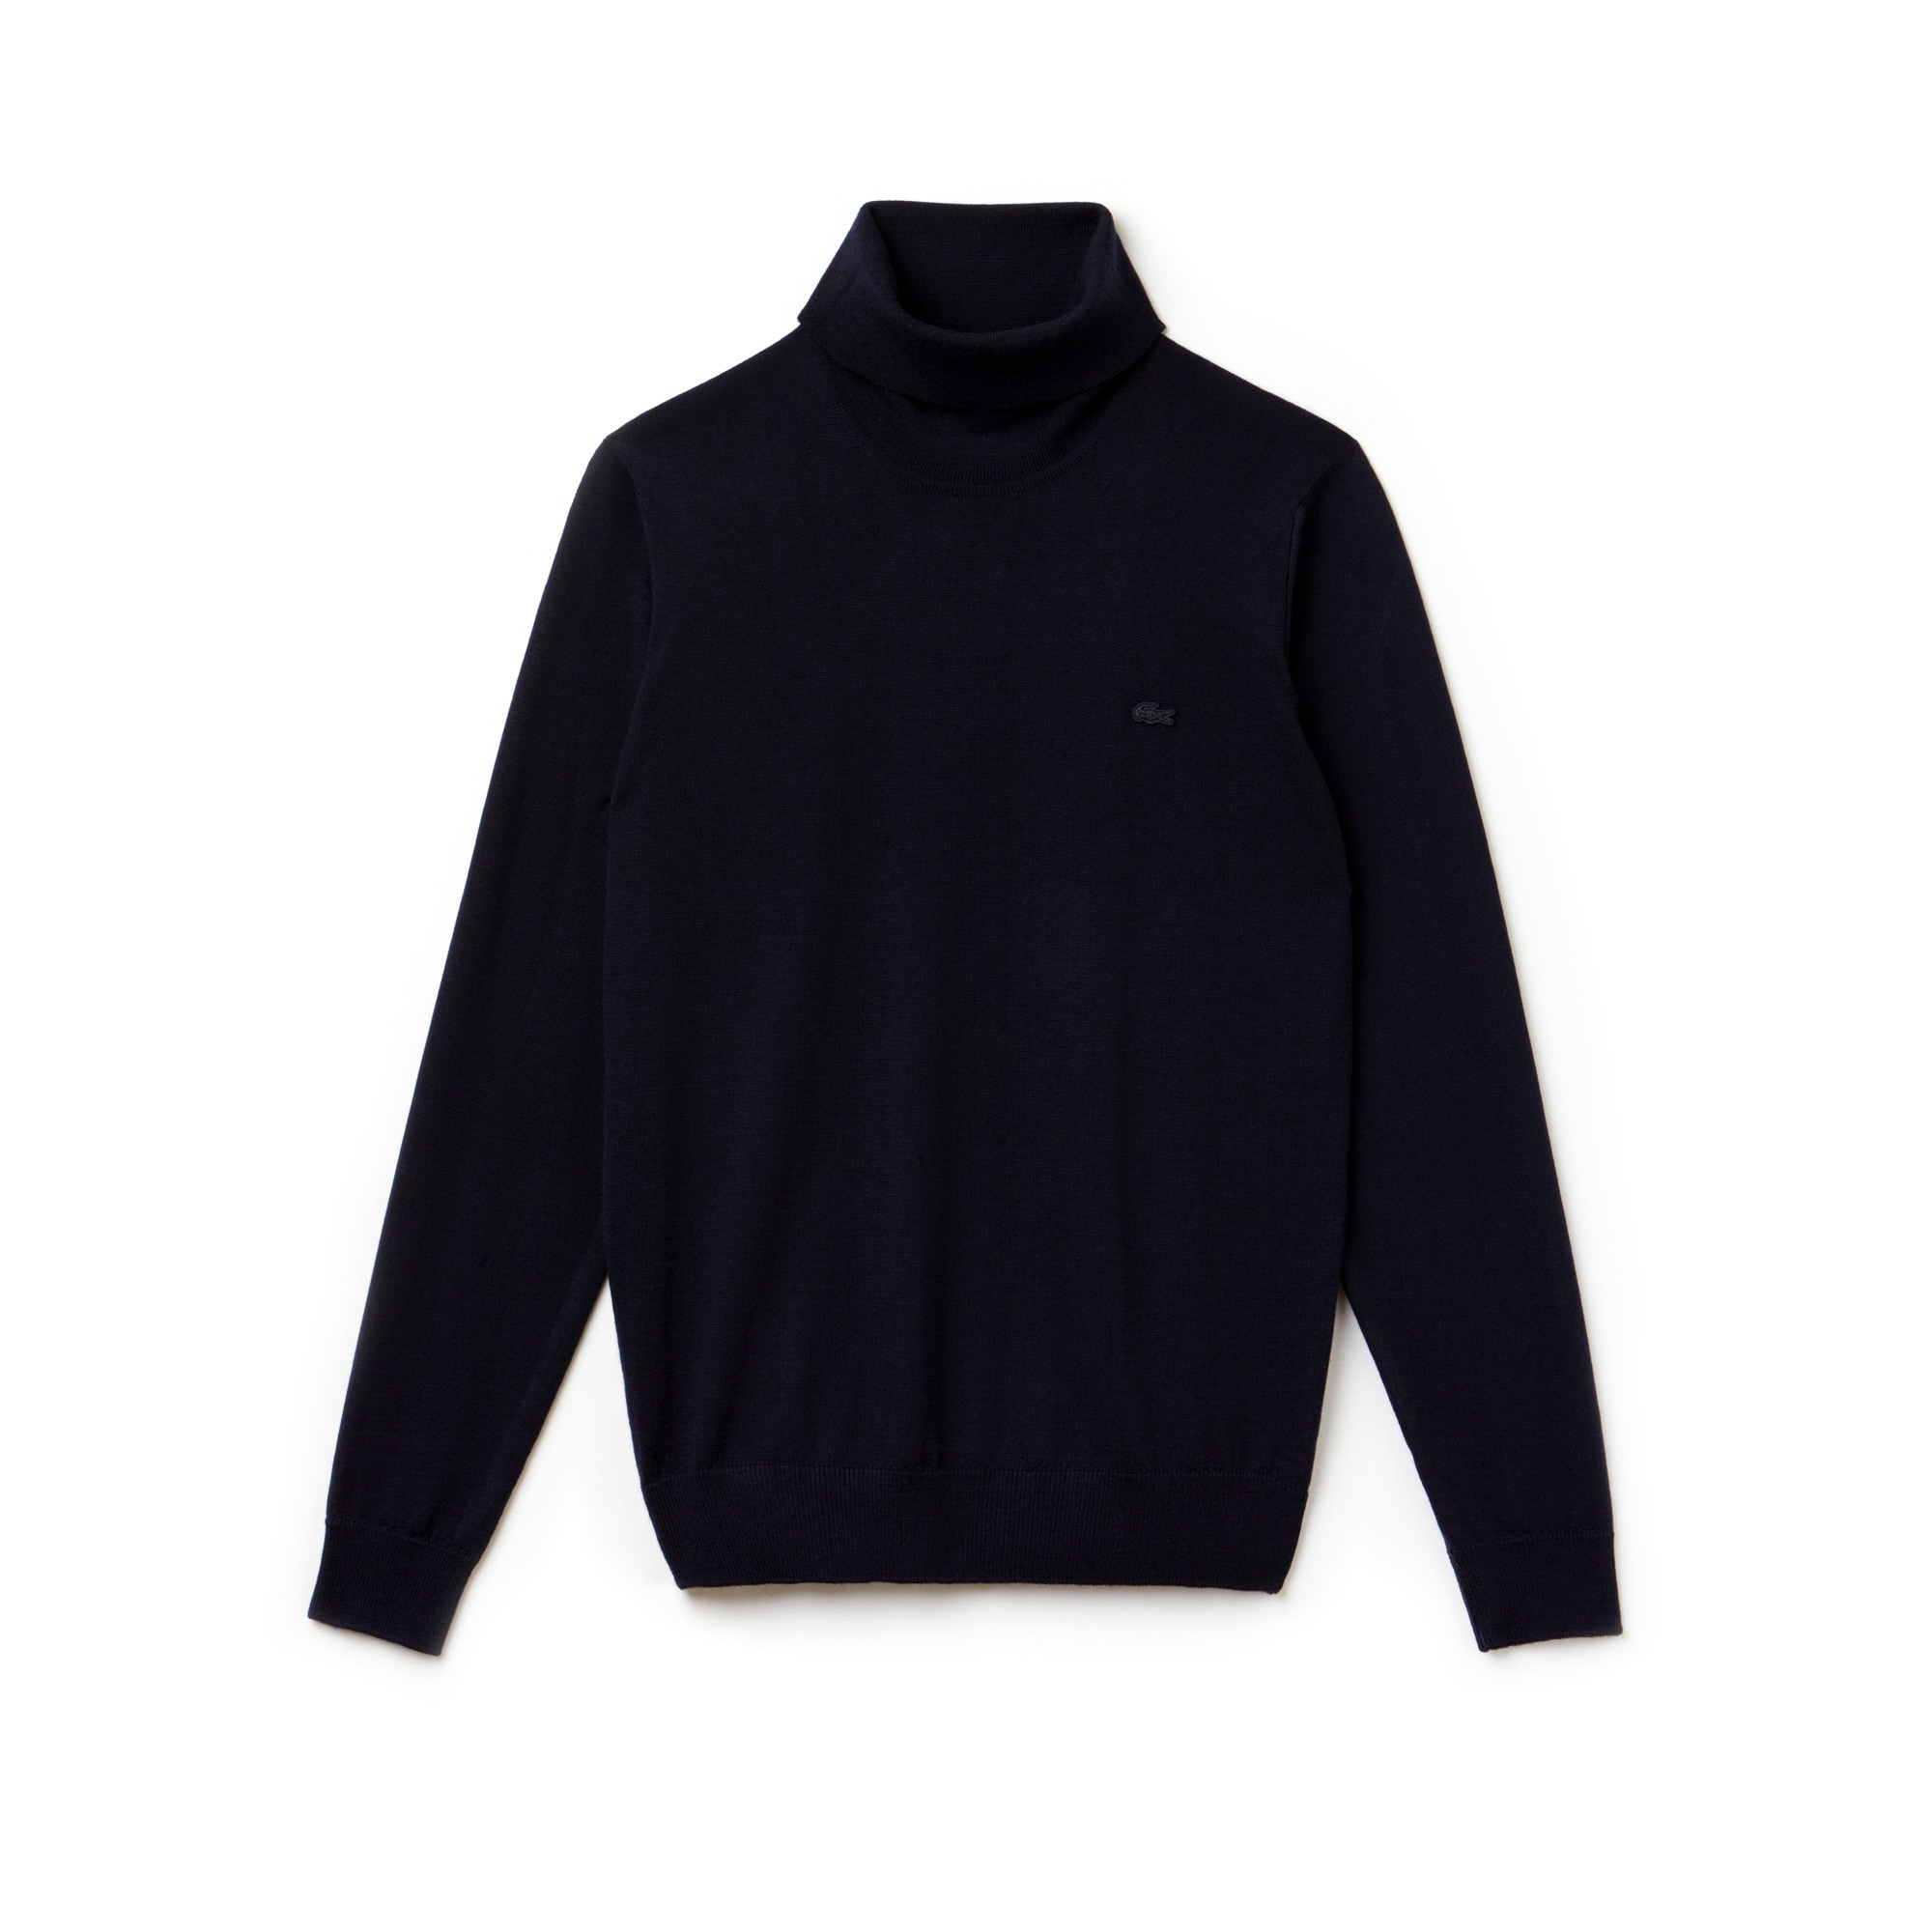 Men's Turtleneck Wool Jersey Sweater